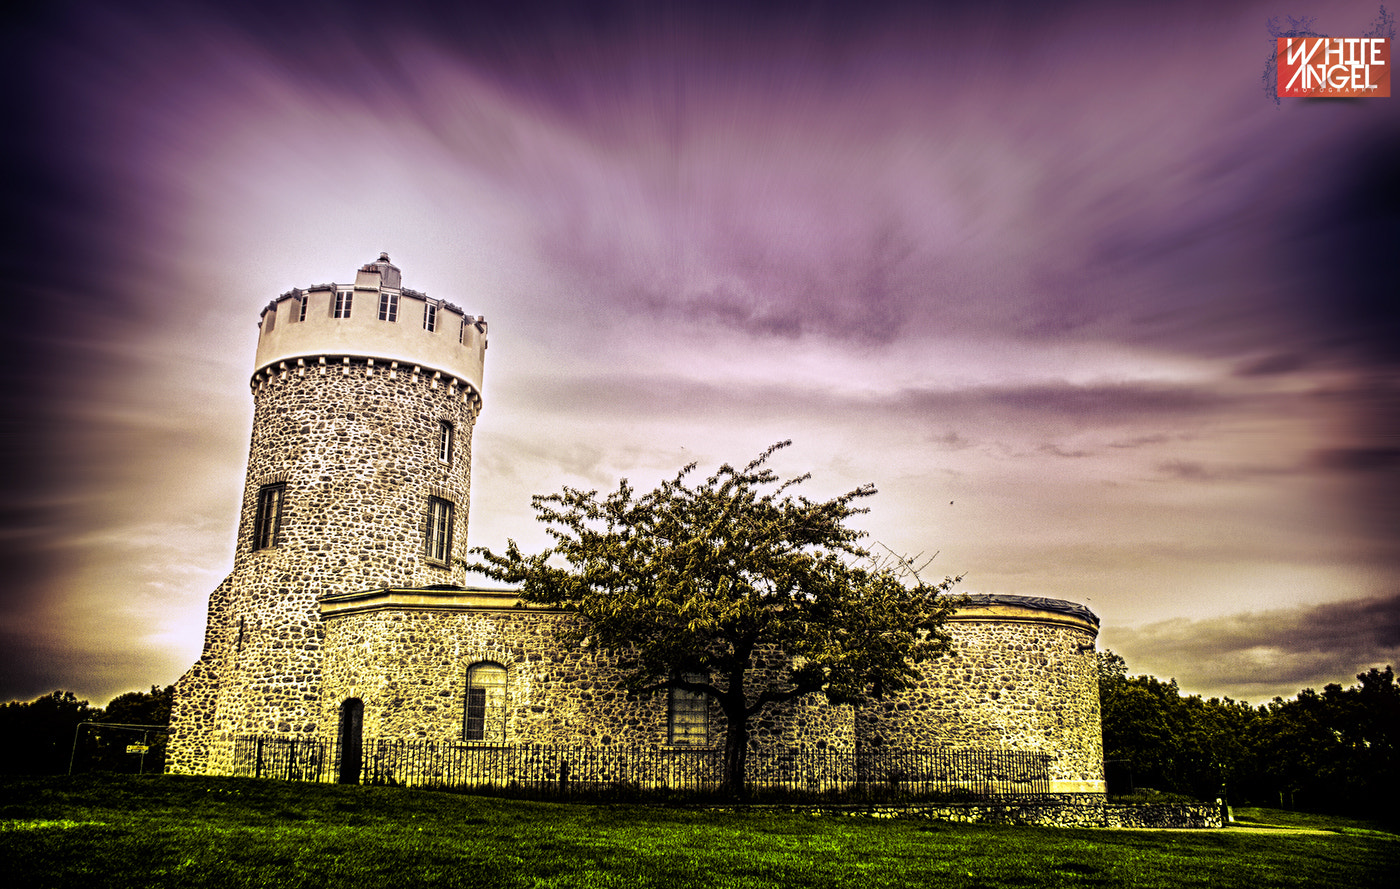 Photograph Camera Obscura (Clifton Observatory) Bristol, UK by WHITE ANGEL PHOTOGRAPHY on 500px